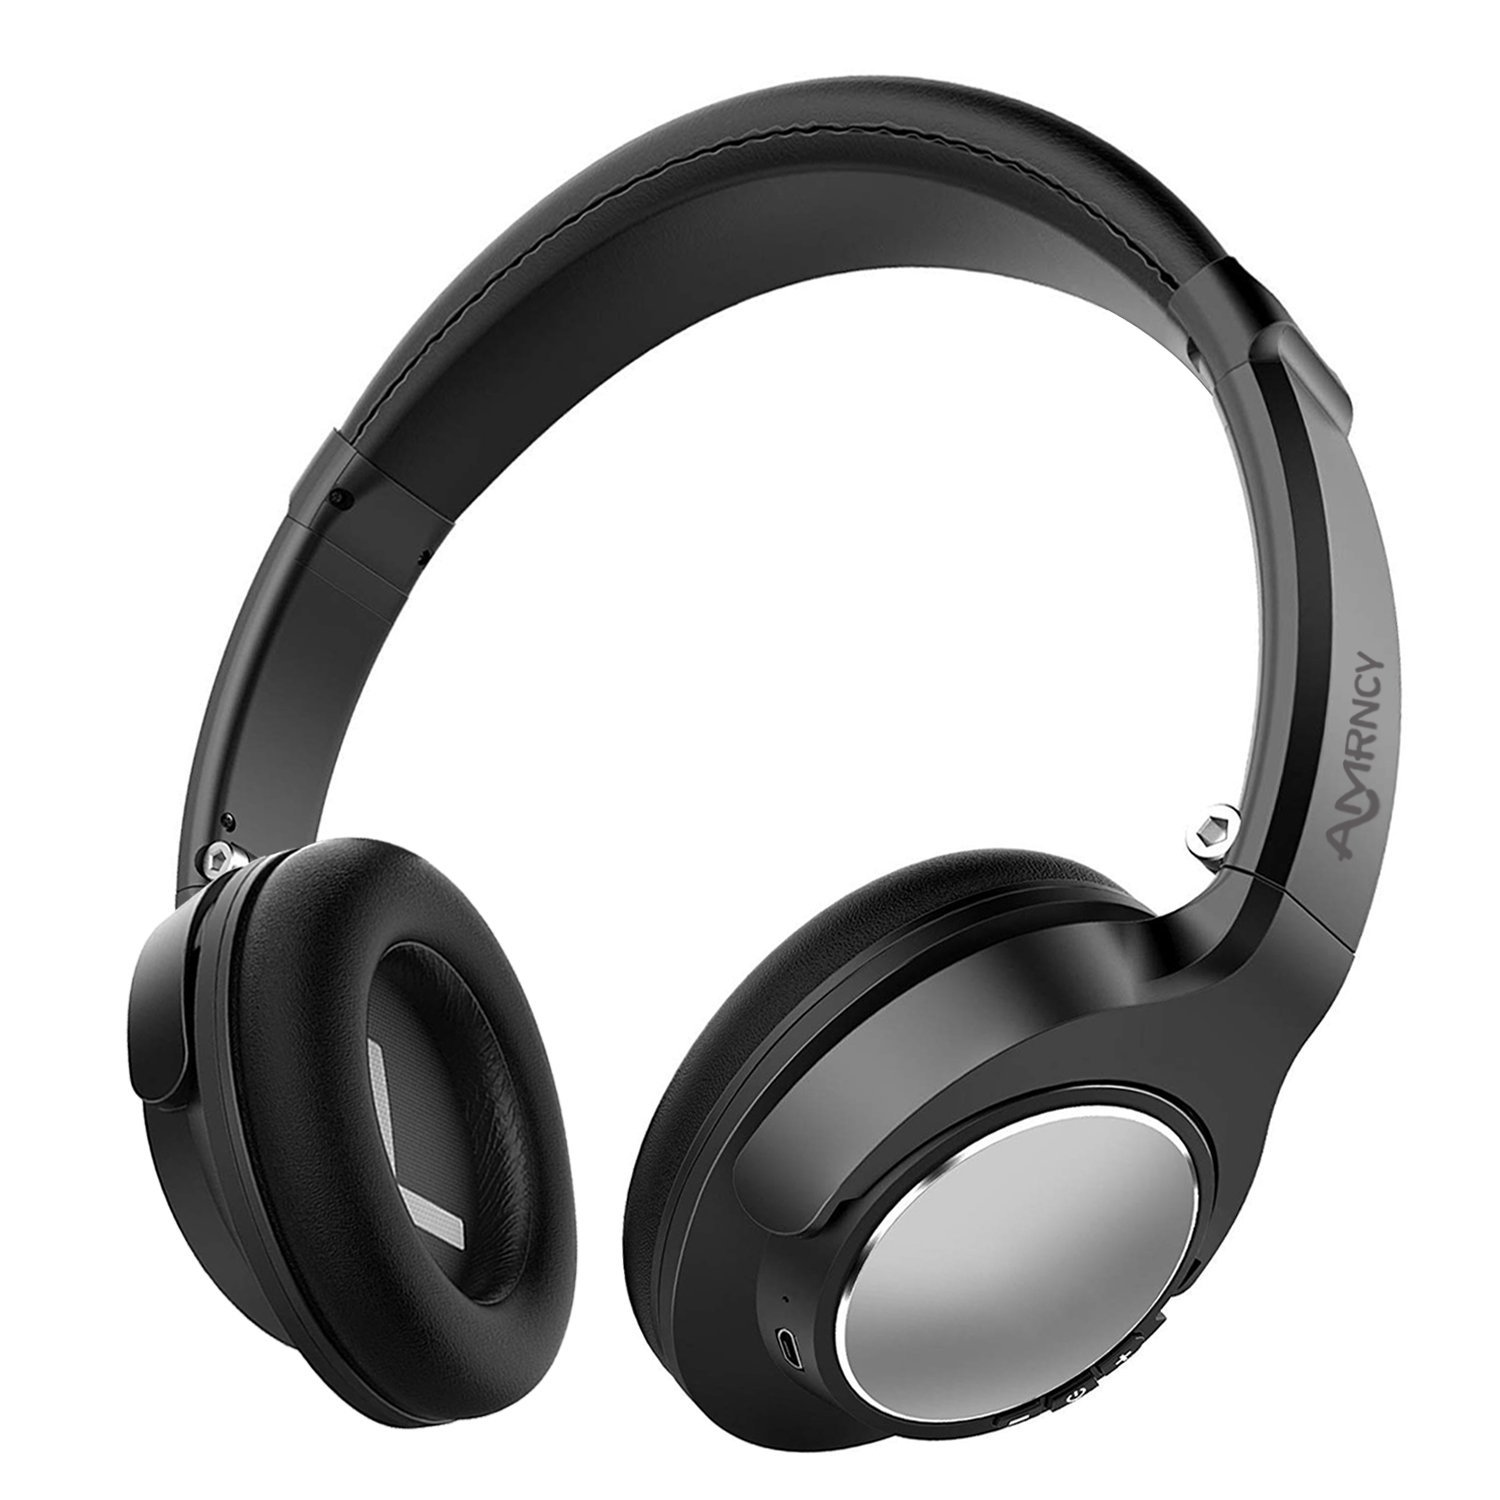 Bluetooth Headphones Wireless Headphones Noise Cancelling with Microphone Hi-Fi Deep Bass Wireless Headphones Over Ear 20H Playtime for Travel Work TV Computer Phone (Black)